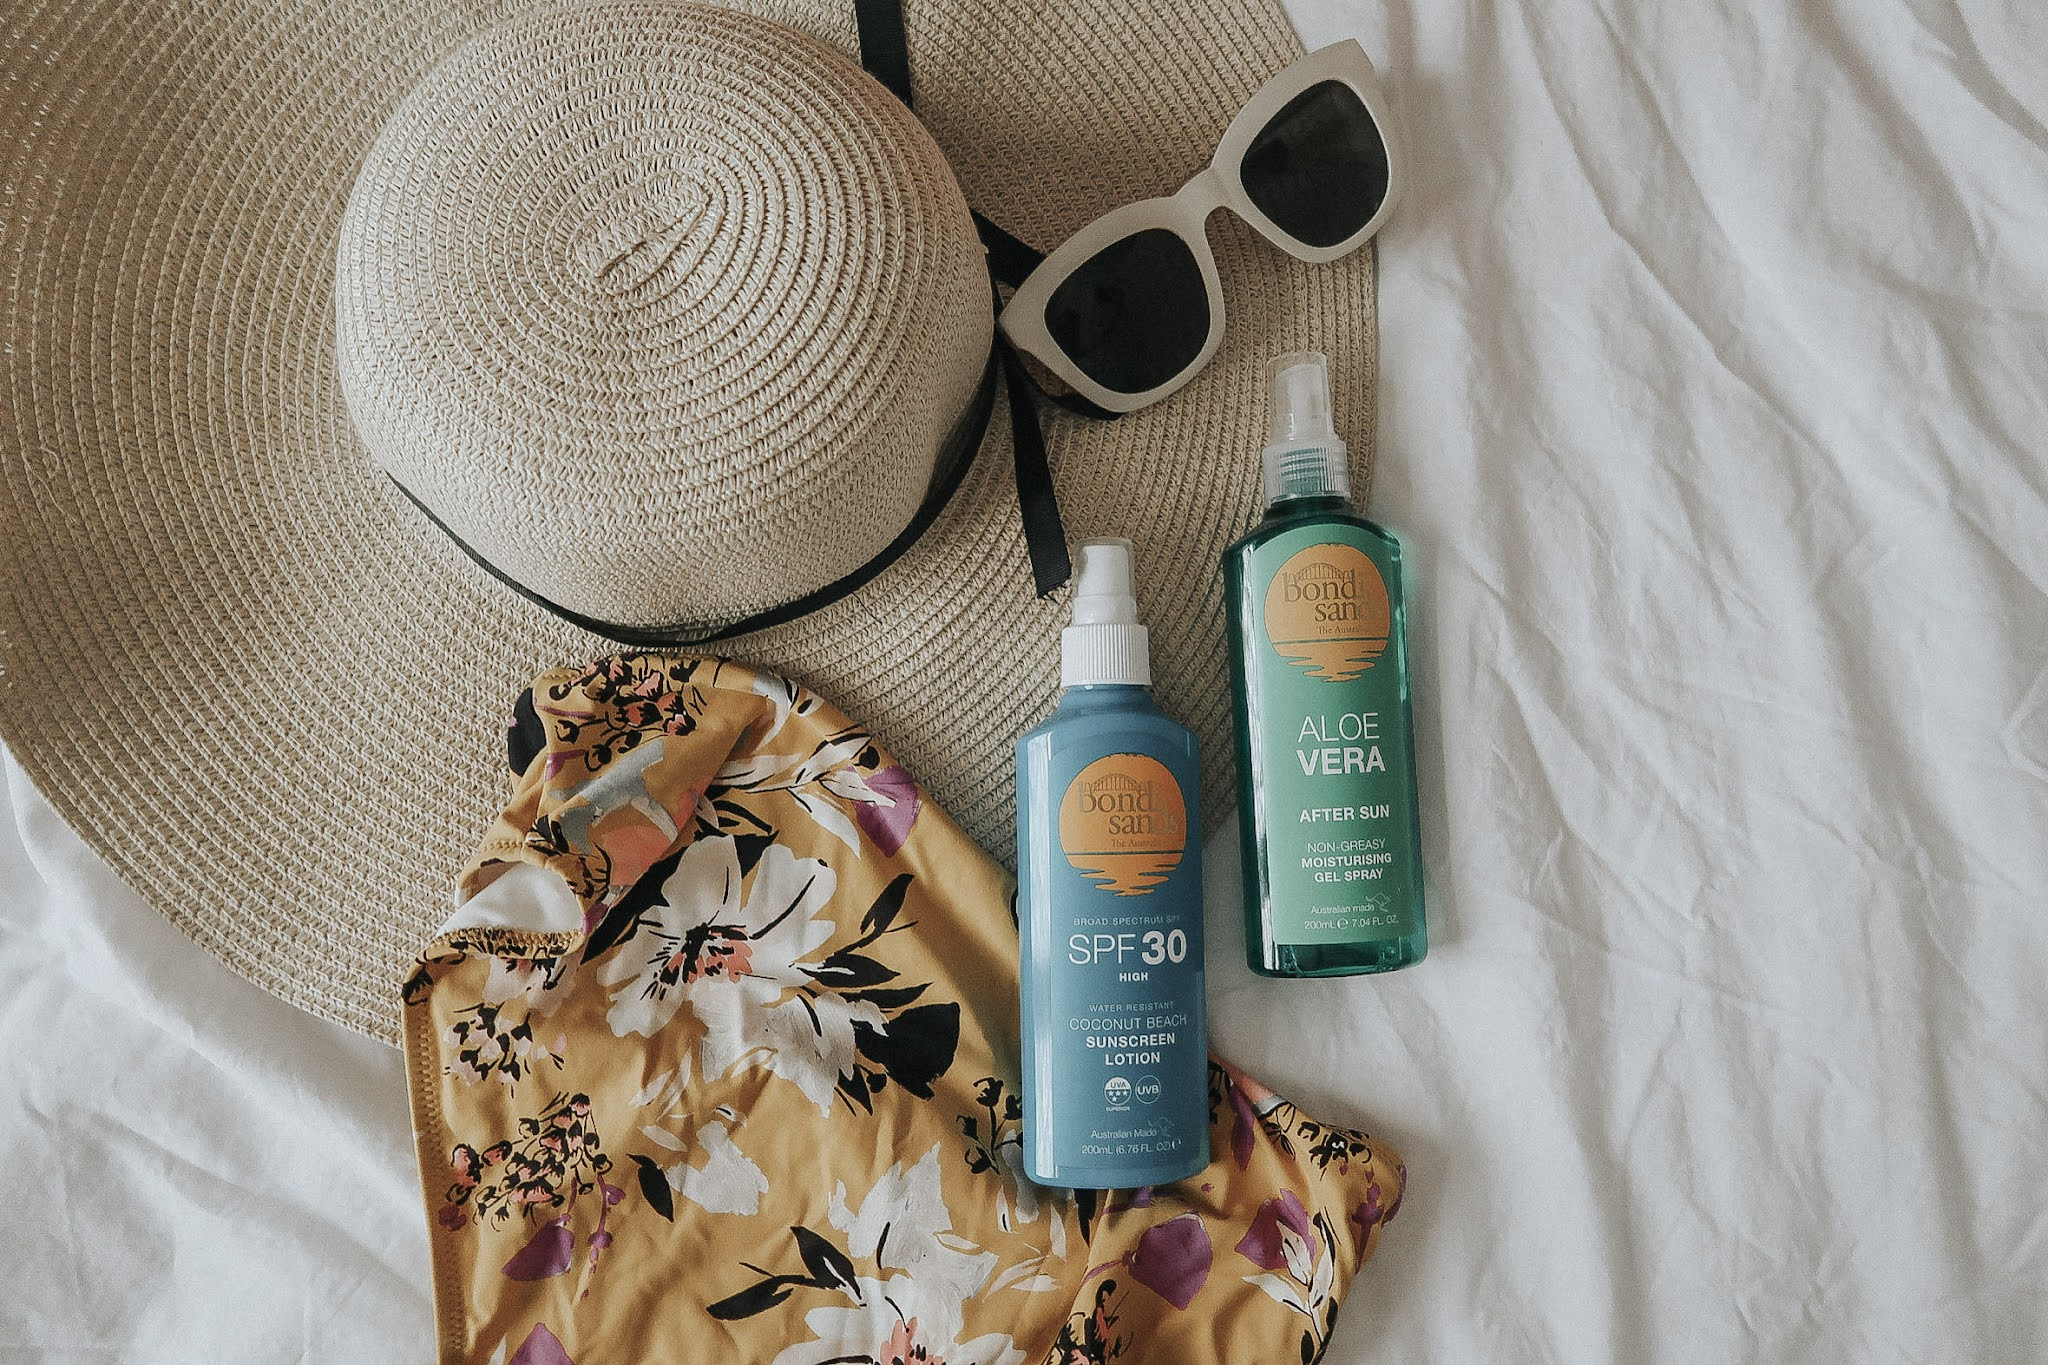 Two bottles of Bondi Sands. An after sun lotion and sunscreen lotion.